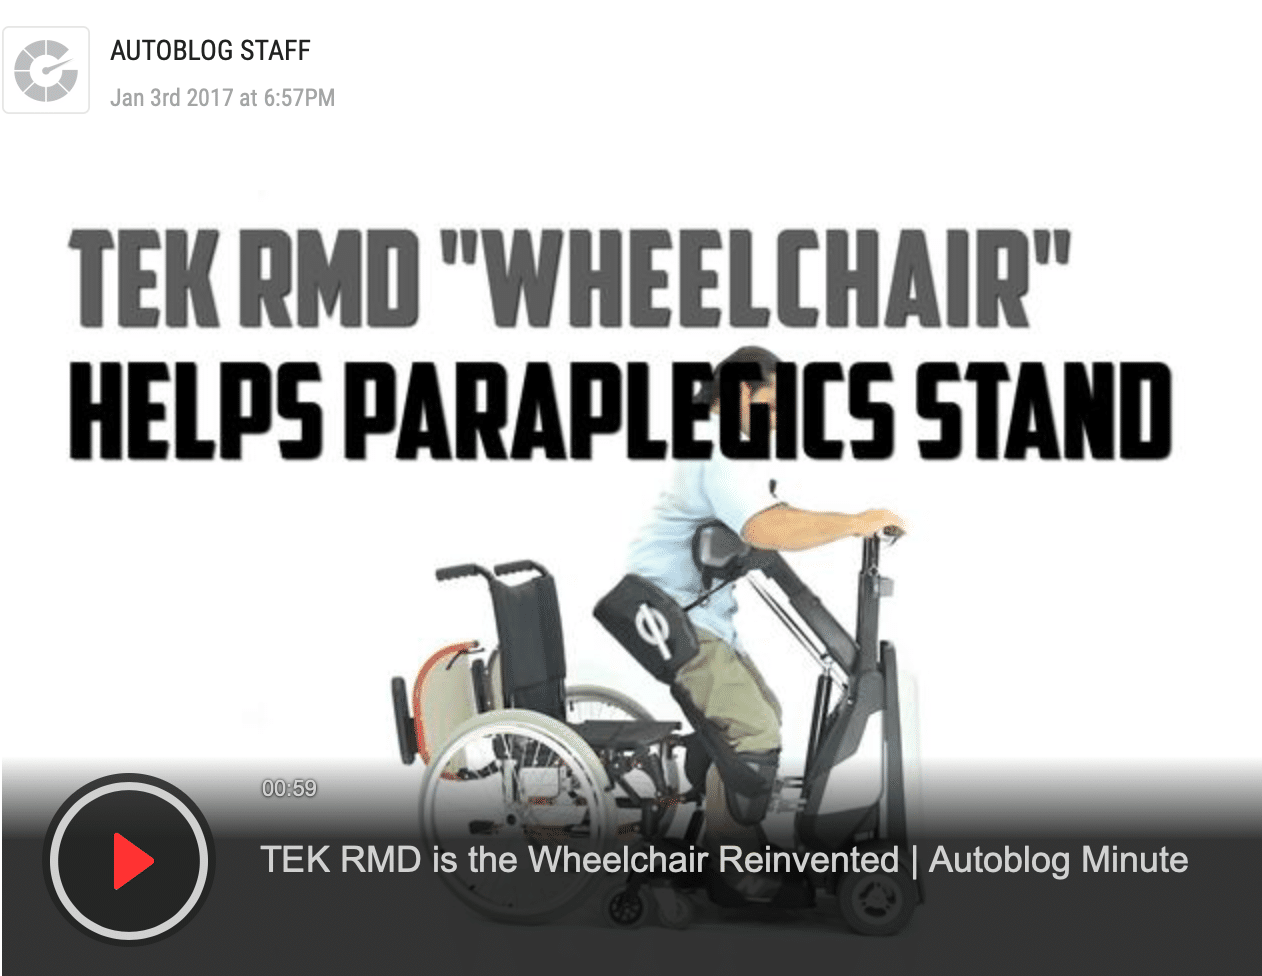 TEK RMD is the Wheelchair Reinvented | Autoblog Minute